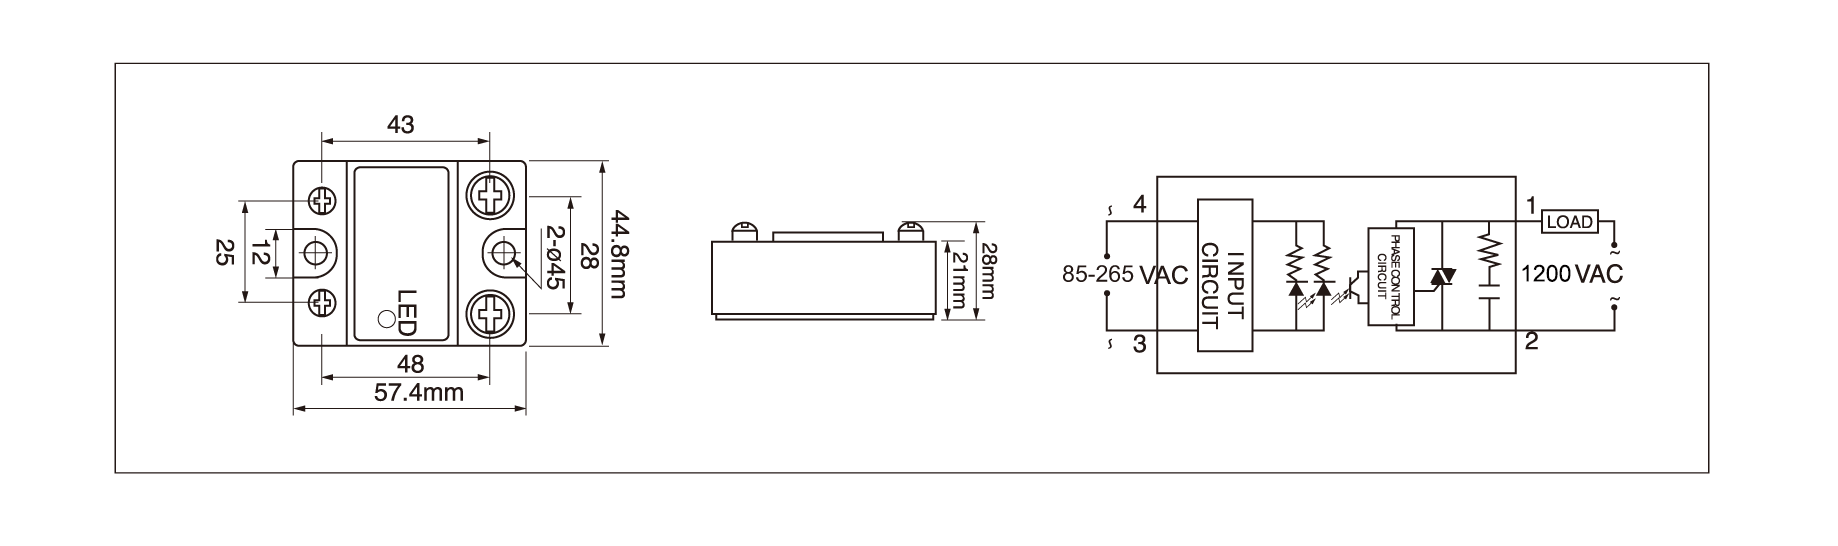 Dimension and circuit diagram - MGR 1A120 series